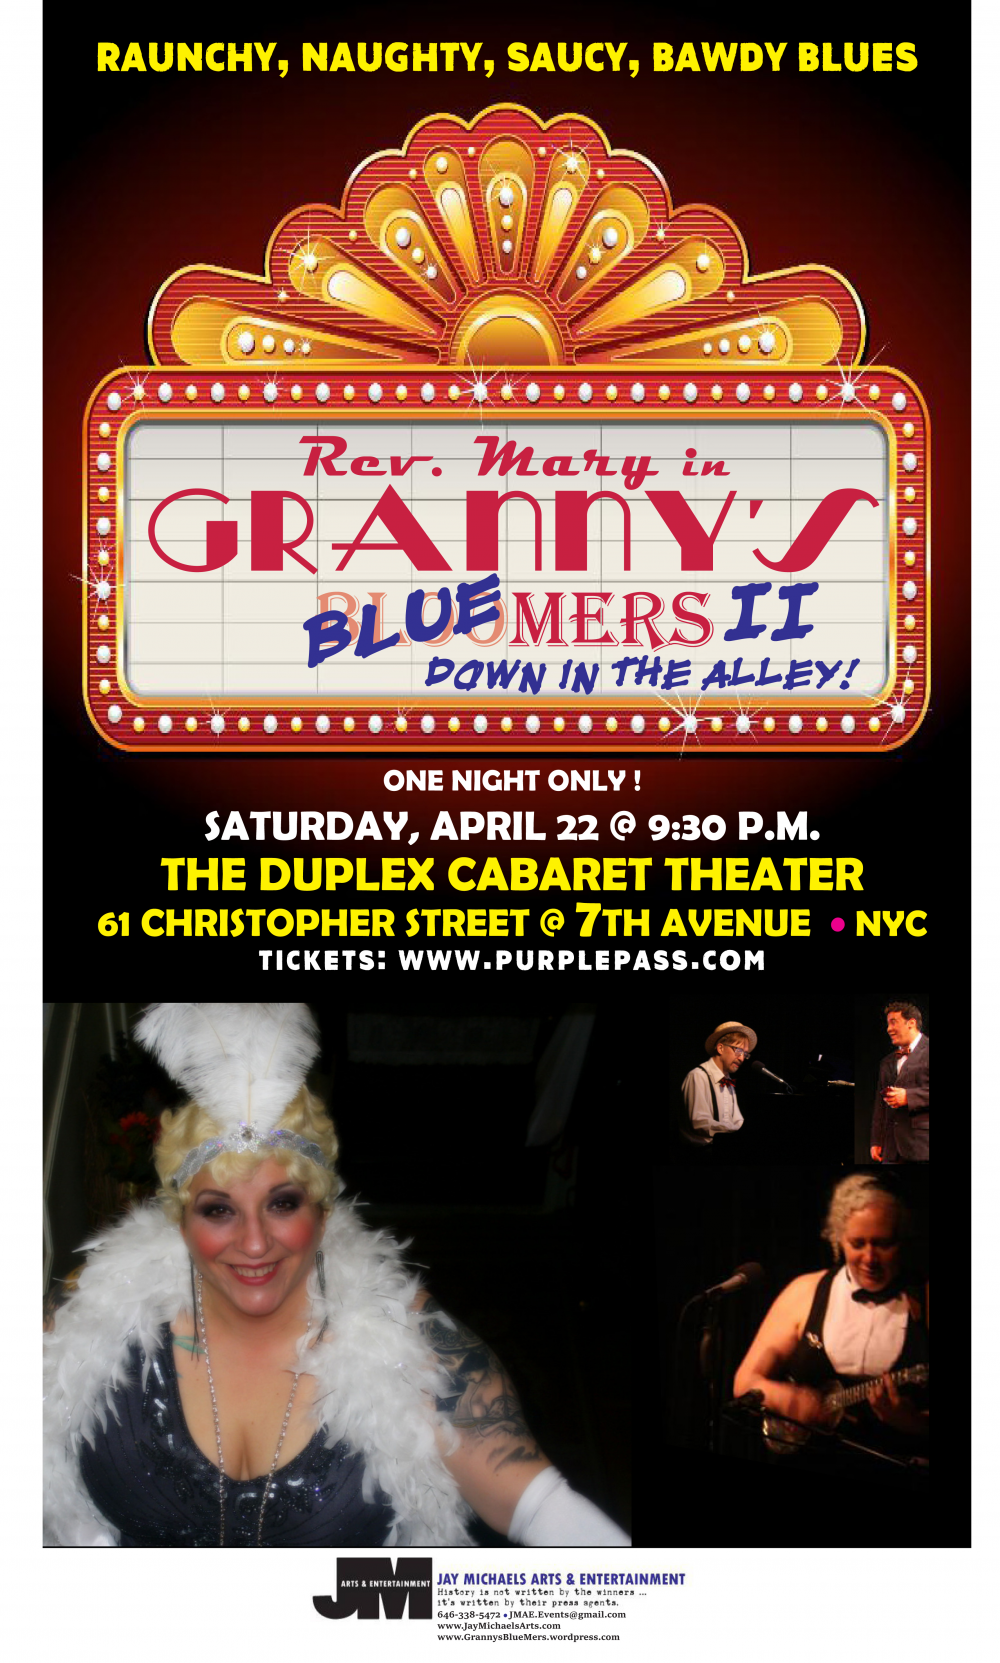 Humping Granny Good granny's blue-mers ii: down in the alleythe duplex on april 22